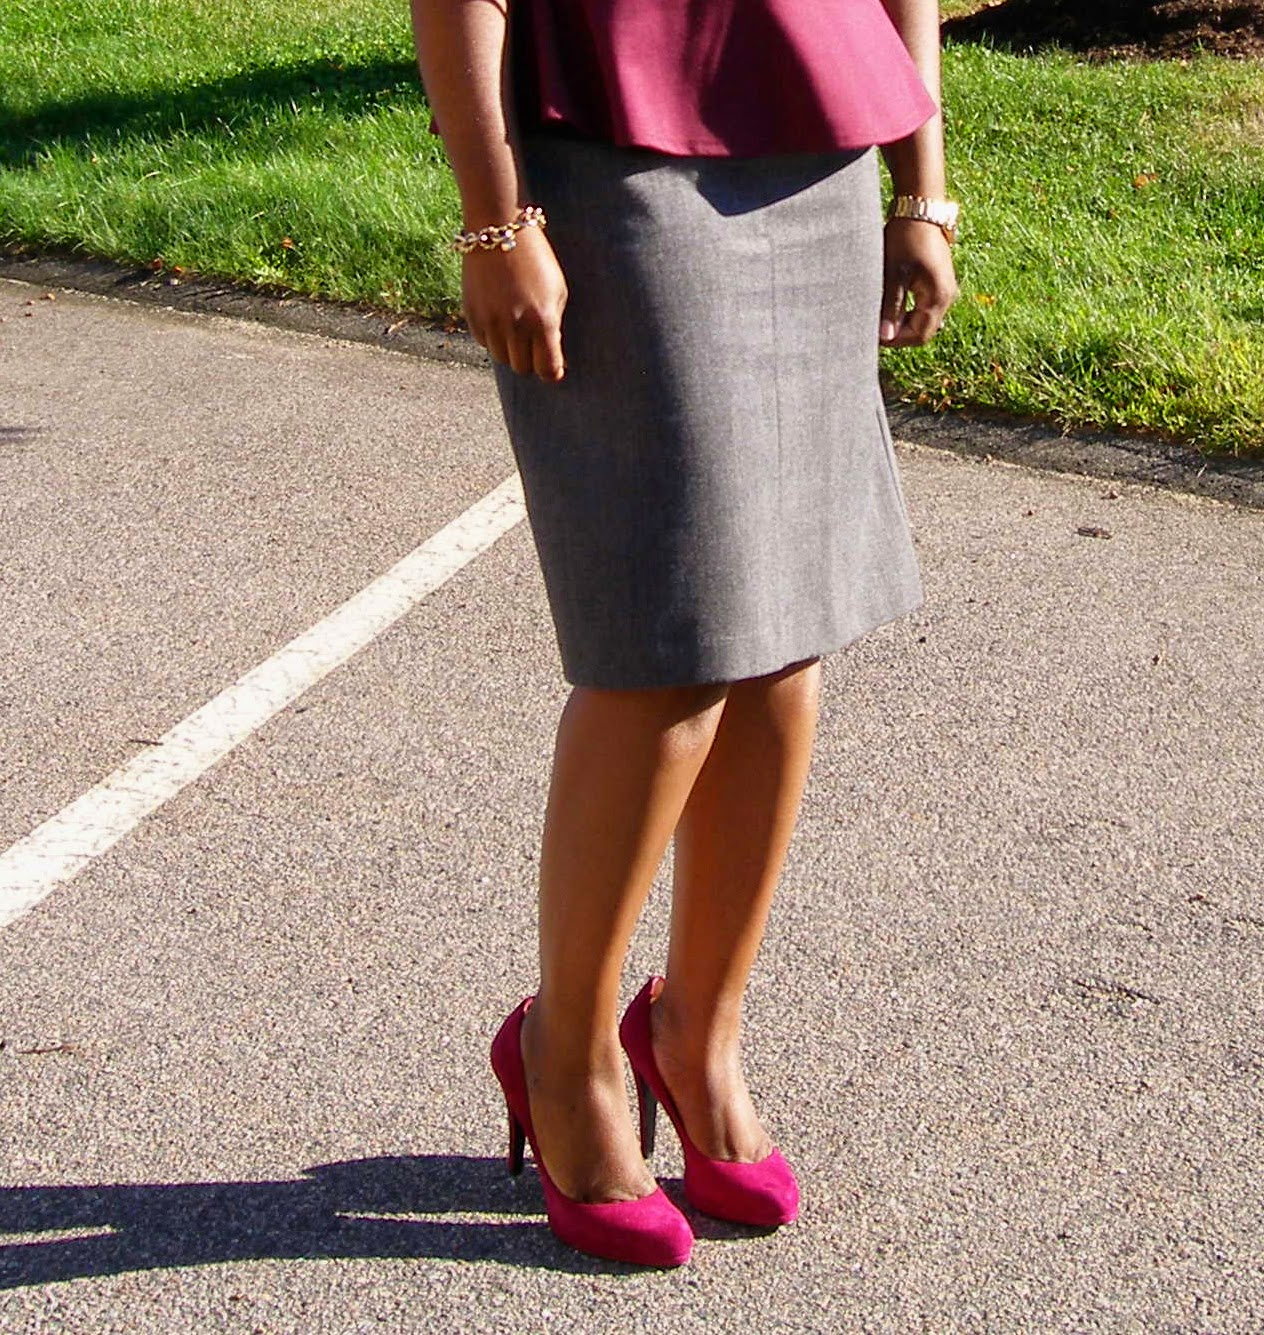 Comfortable Pumps, Grey and hot pink